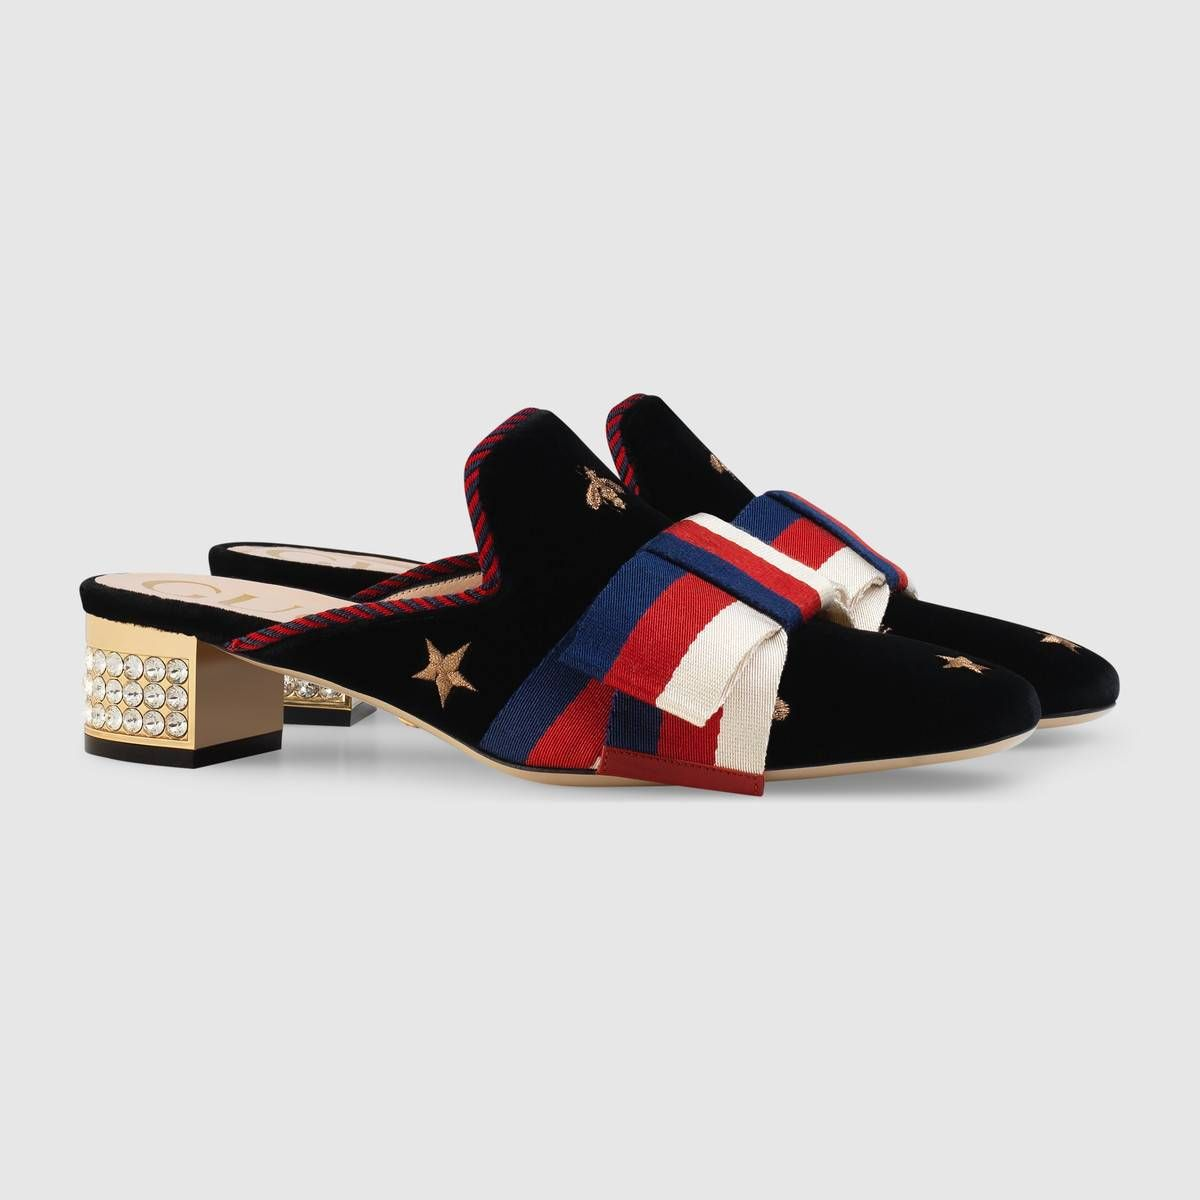 805e1ca29ea6 Embroidered velvet slide with Sylvie bow - Gucci Women s Slippers   Mules  5052859FR201212